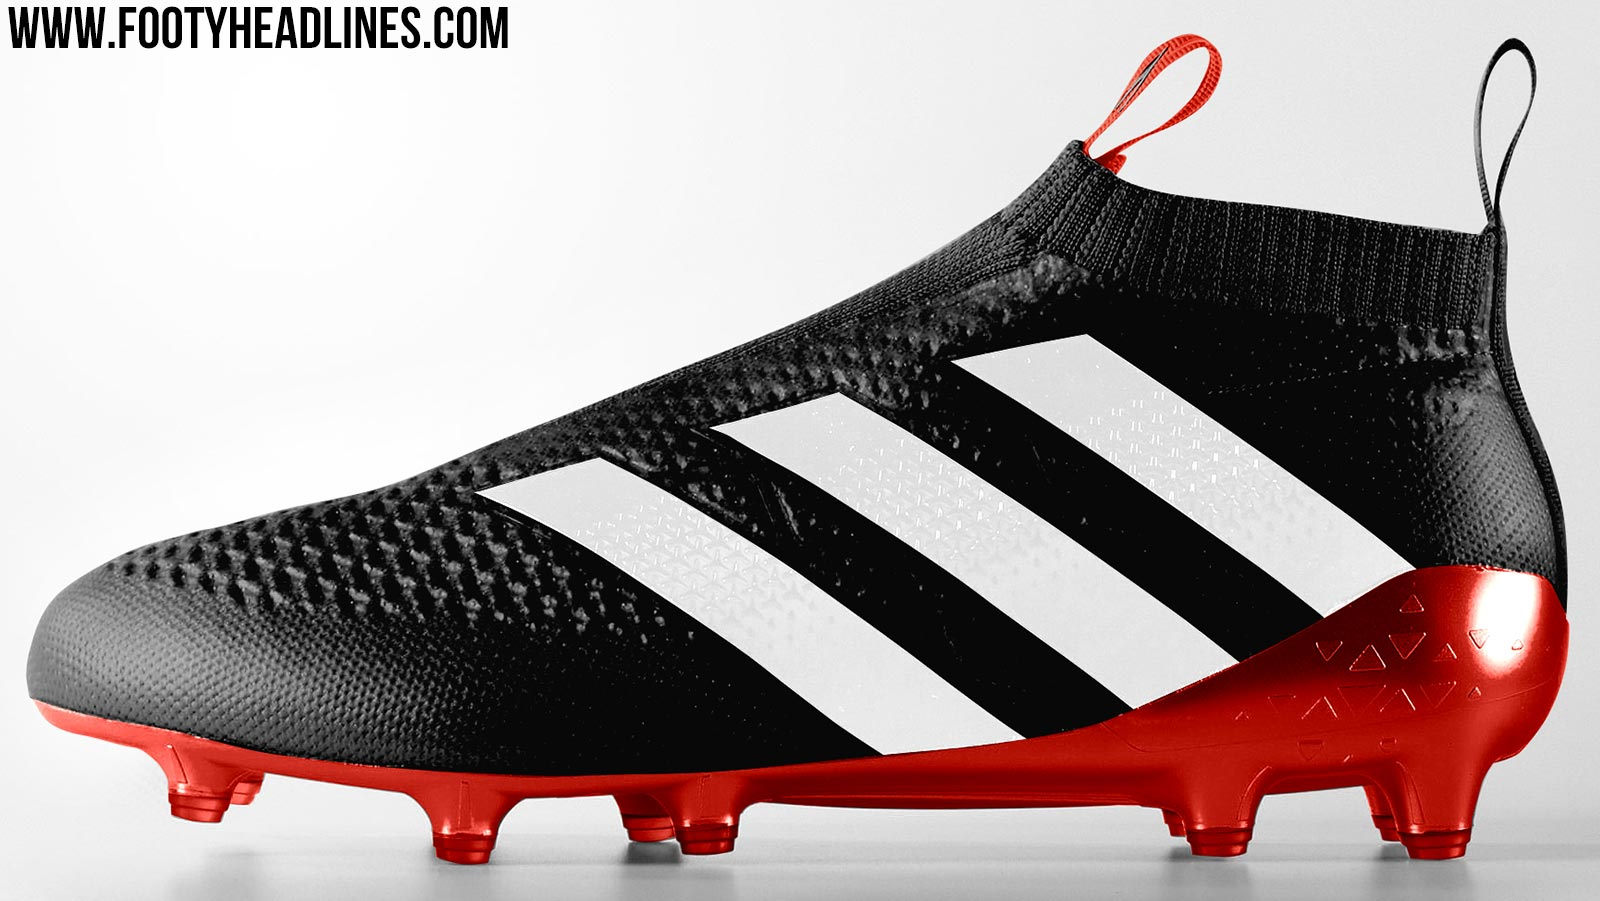 new product 27a15 94f33 10 Stunning Adidas Ace 16+ PureControl Colorway Concepts ...